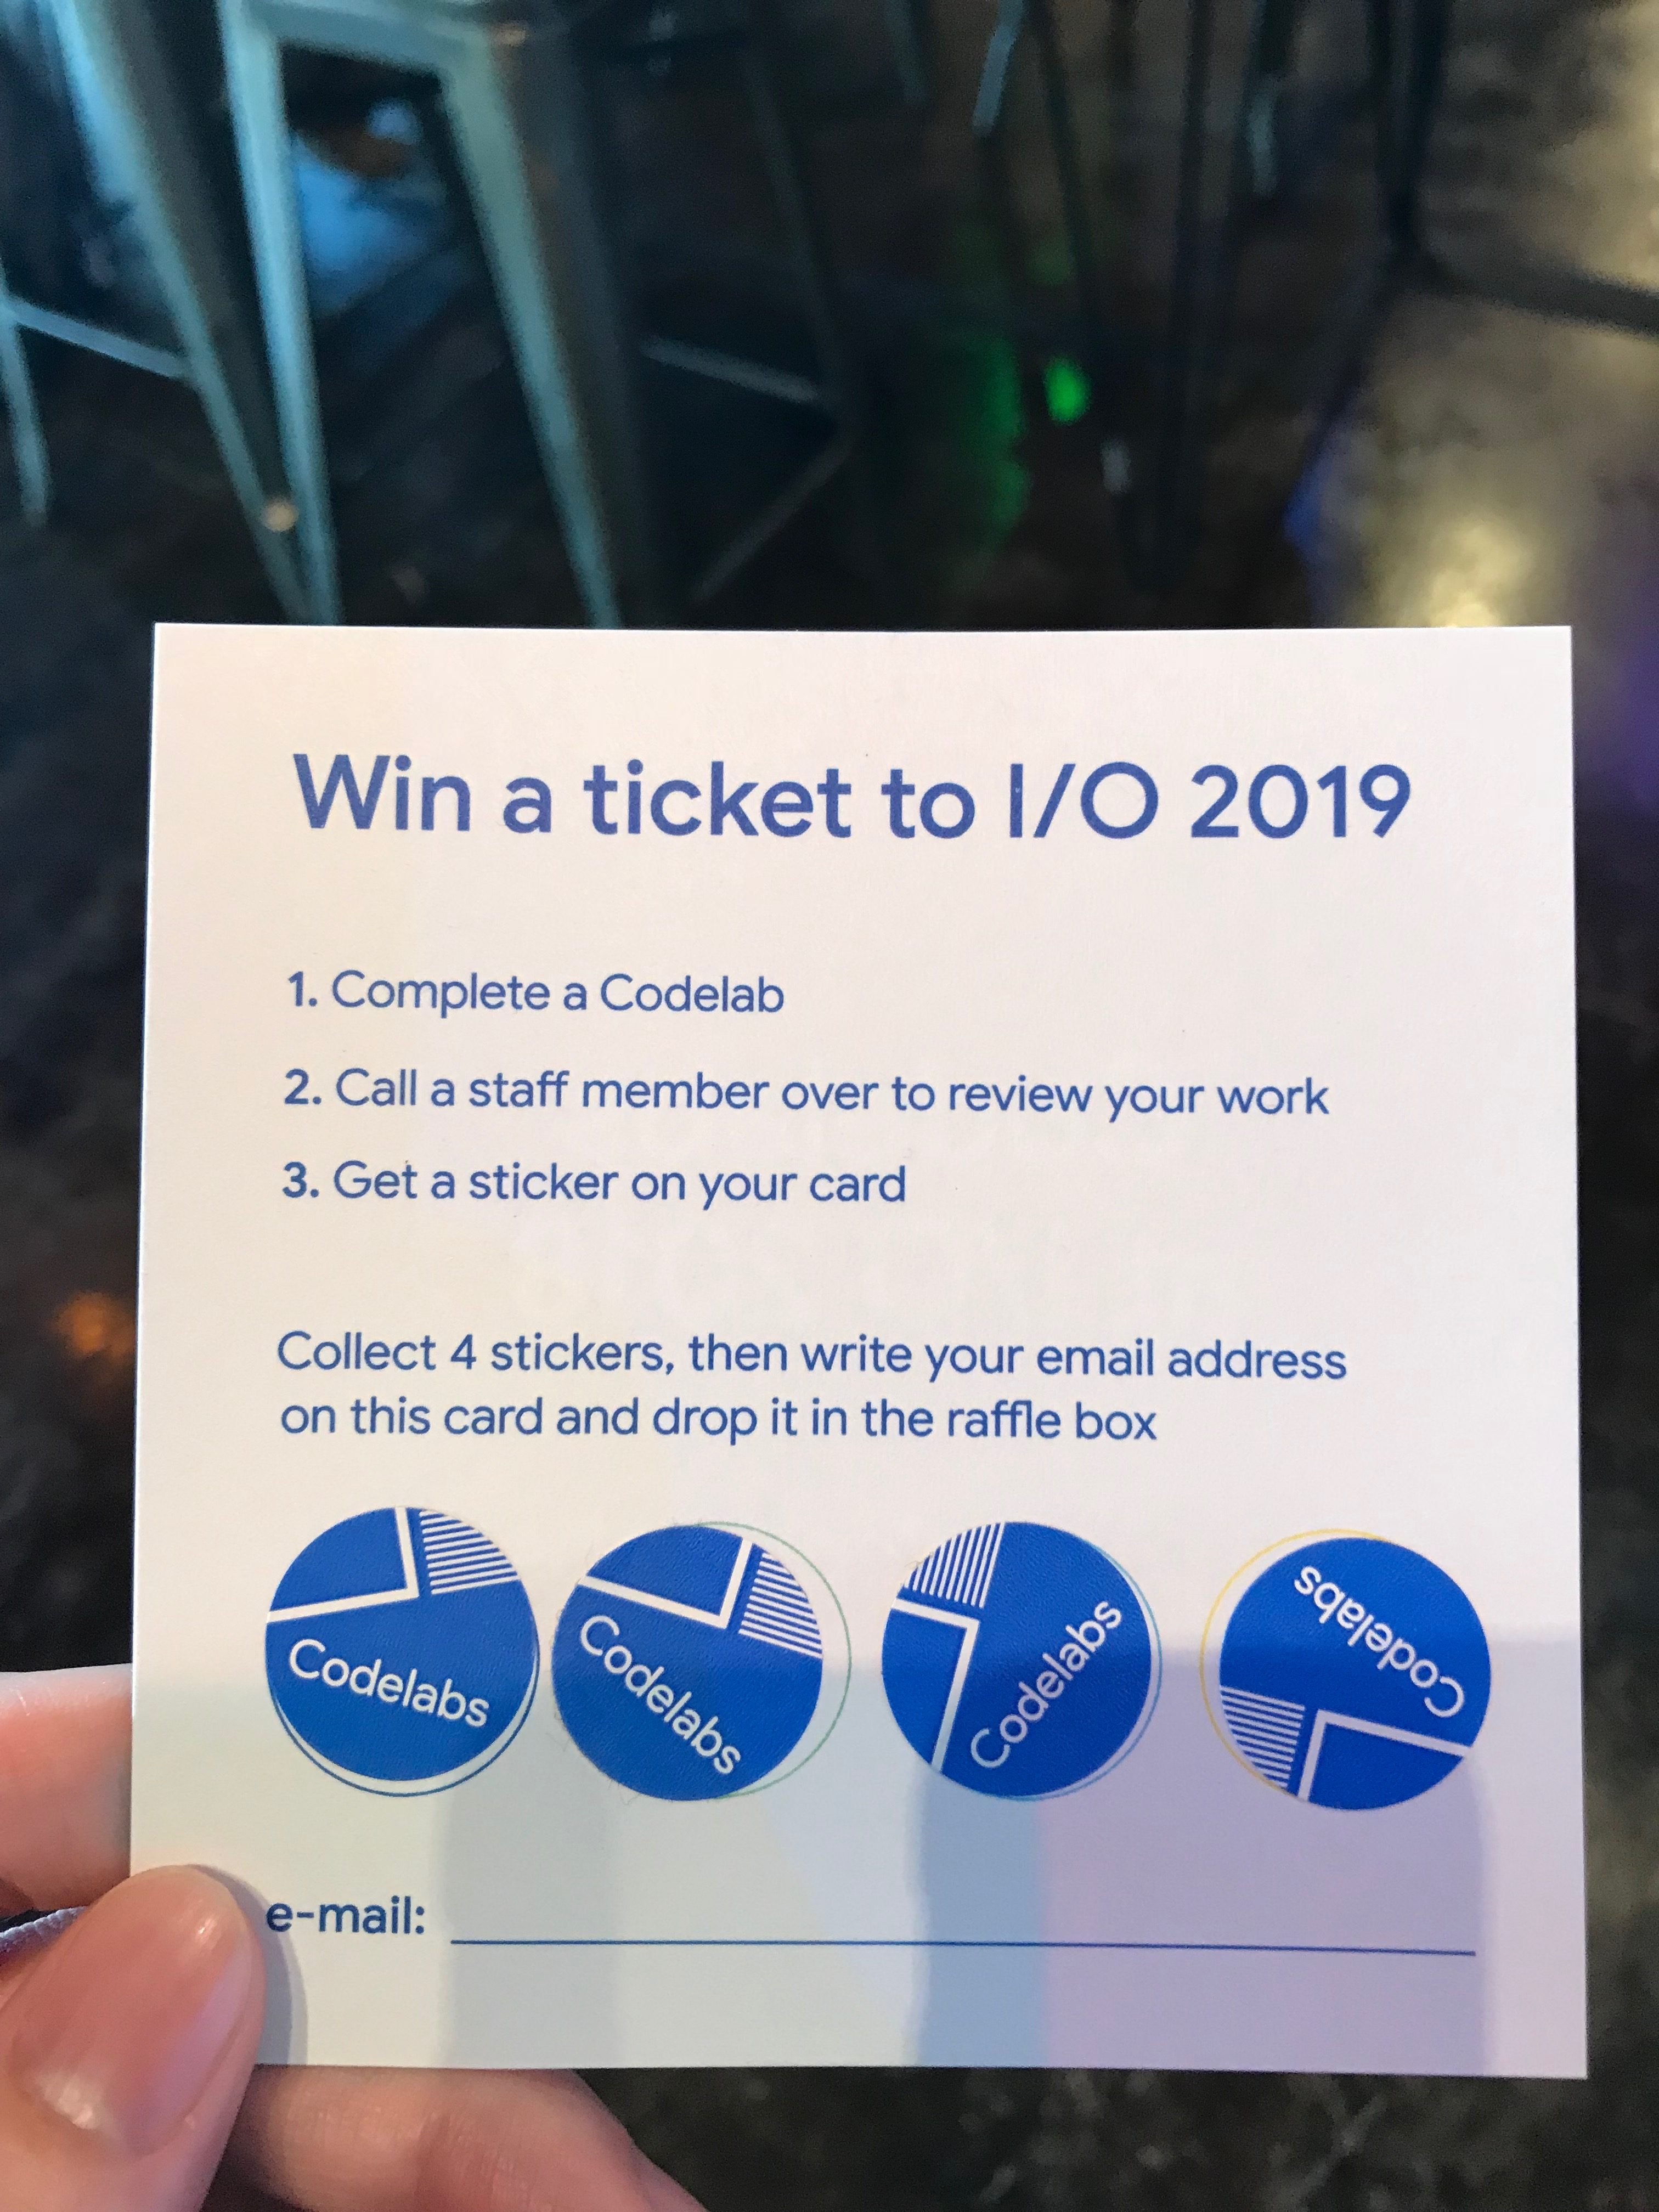 Win a ticket to io 2019